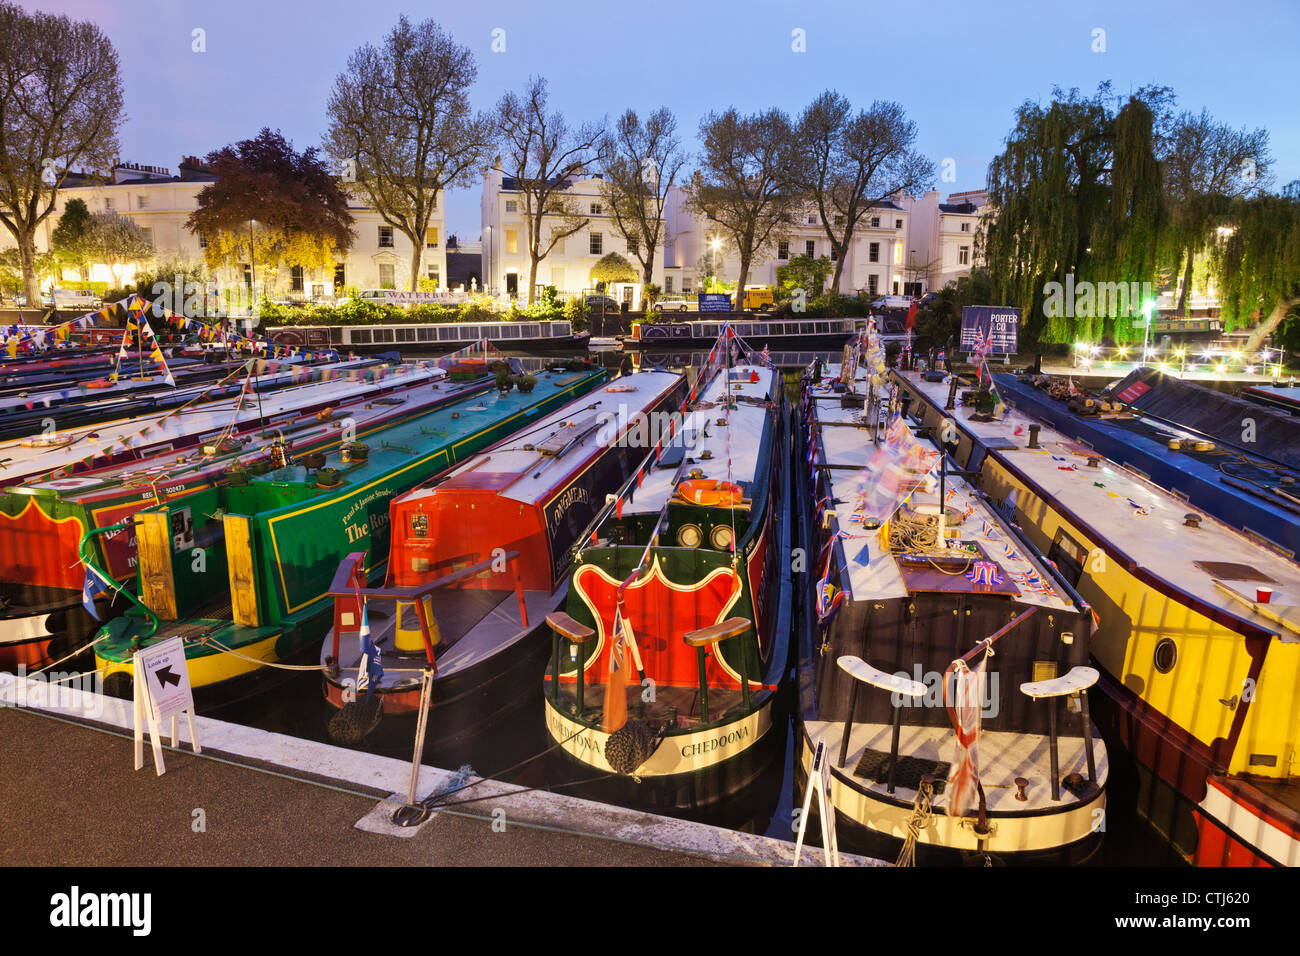 England, London, Little Venice, Canal Boats - Stock Image